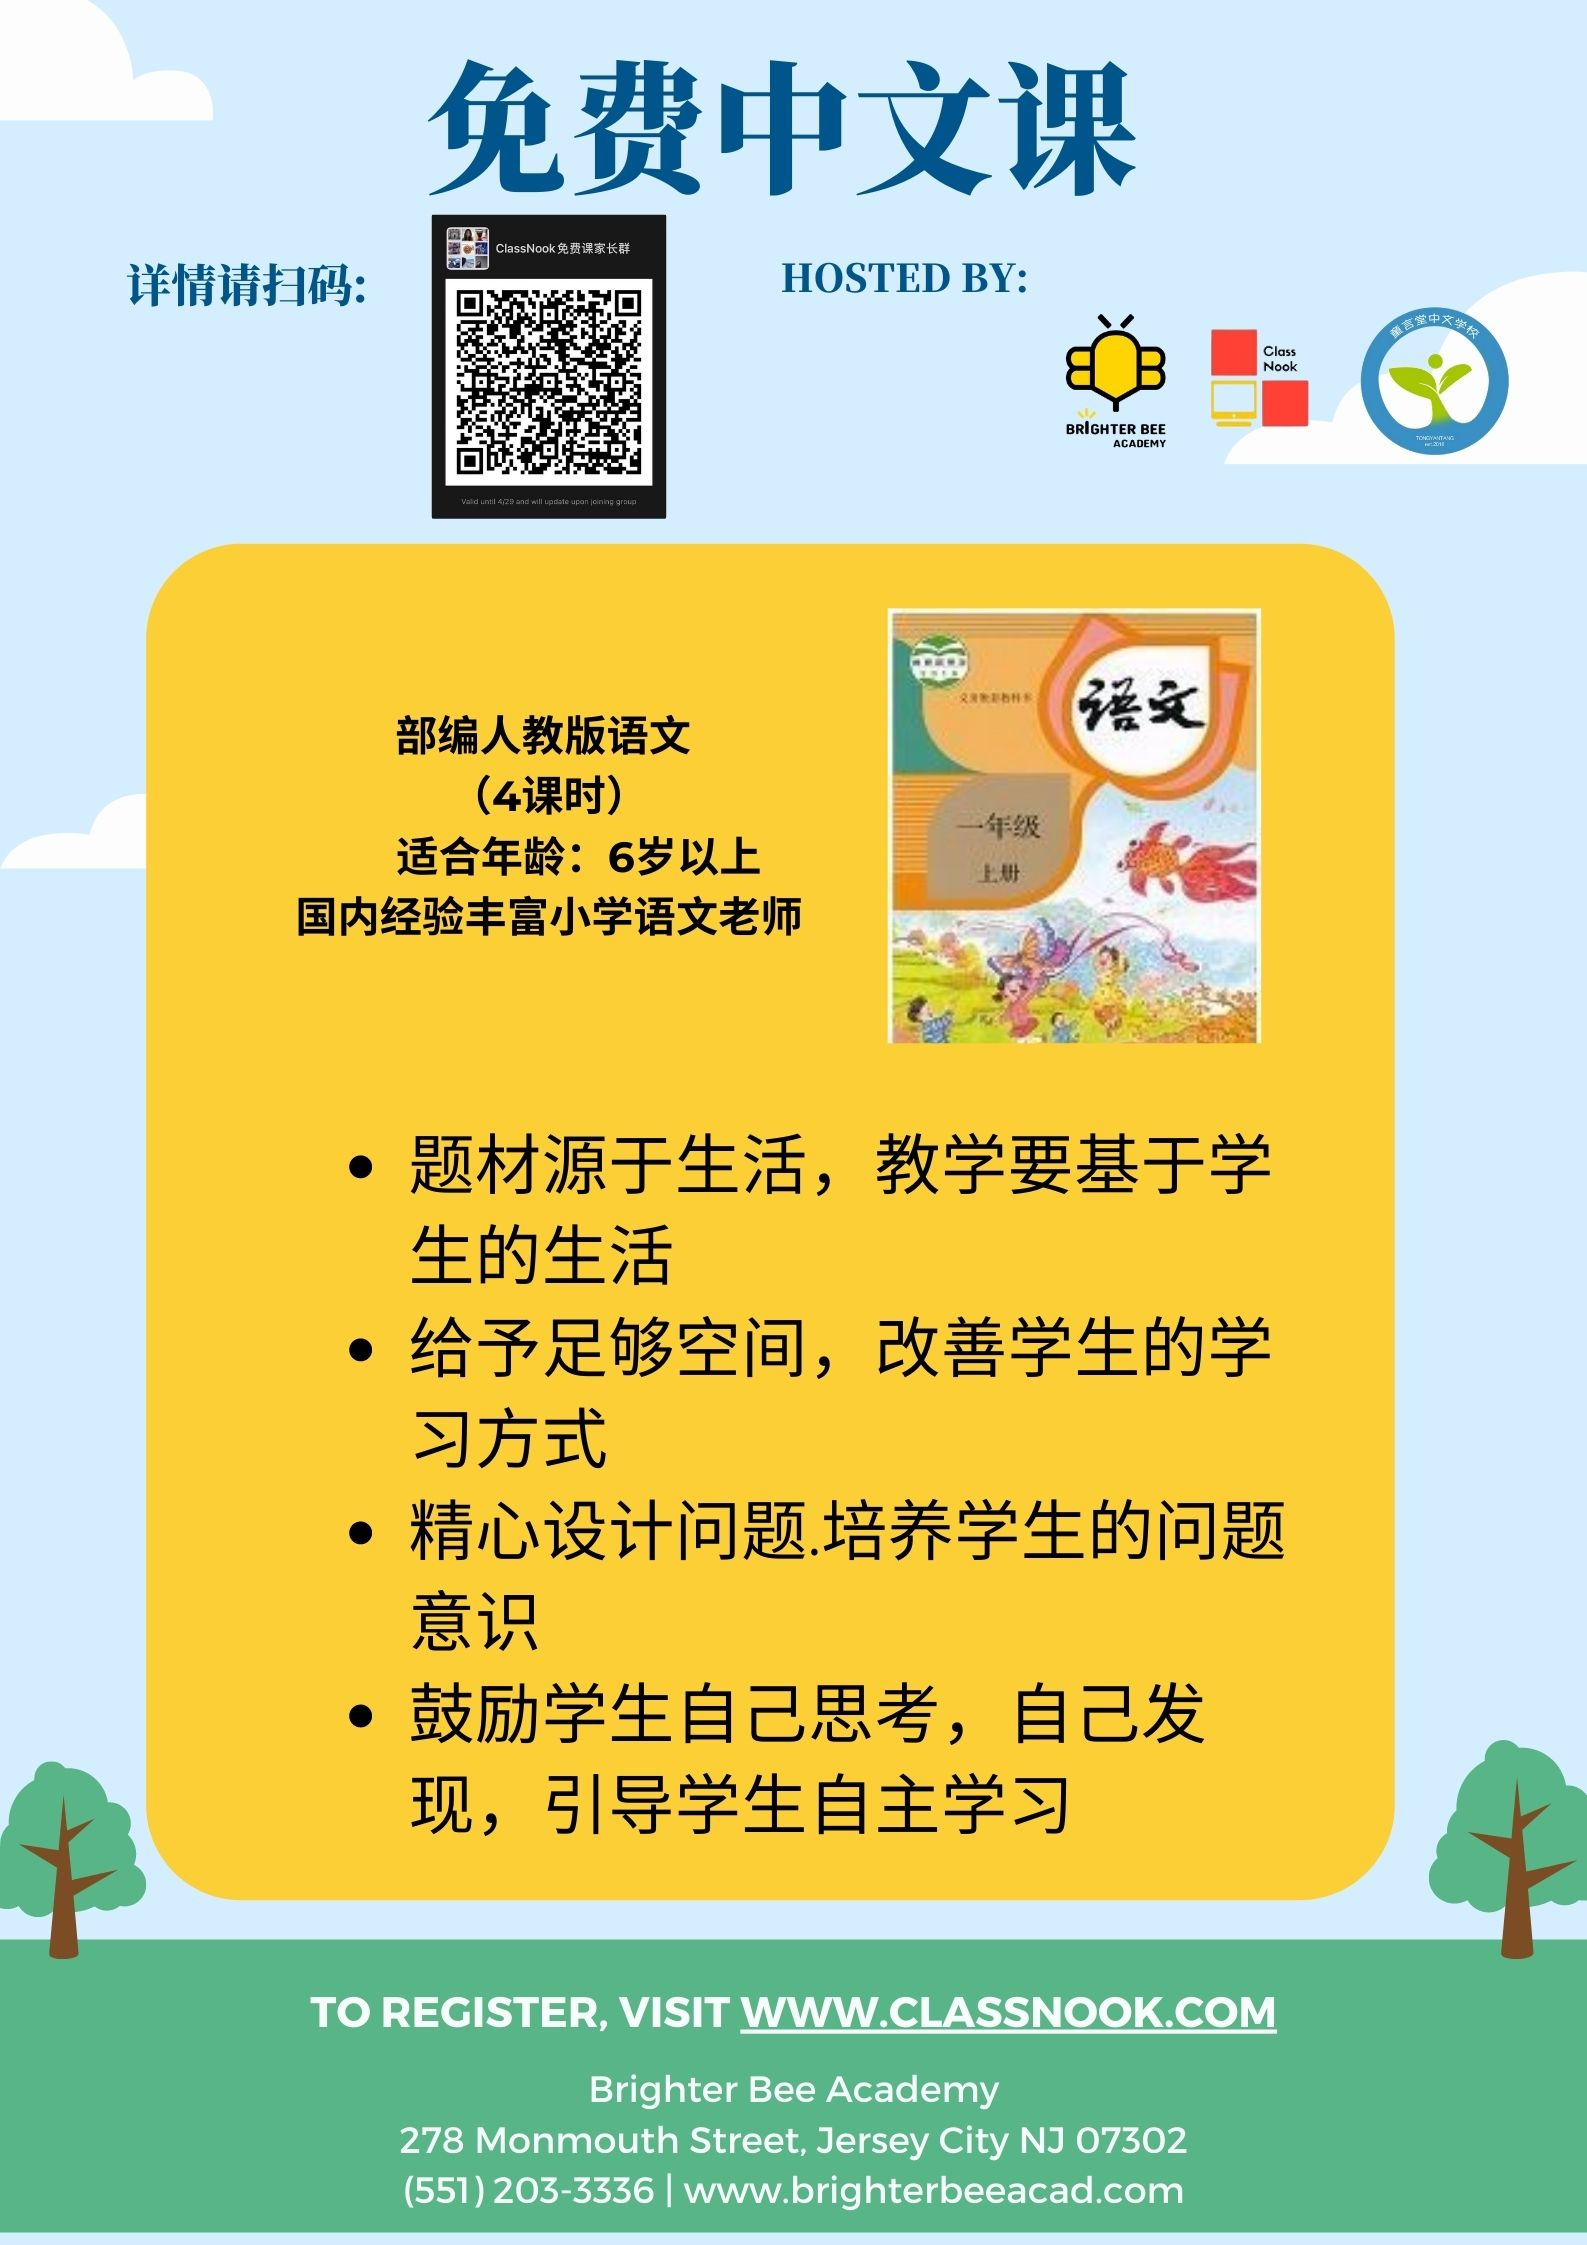 Copy of BB Course Posters 的複本 (2)